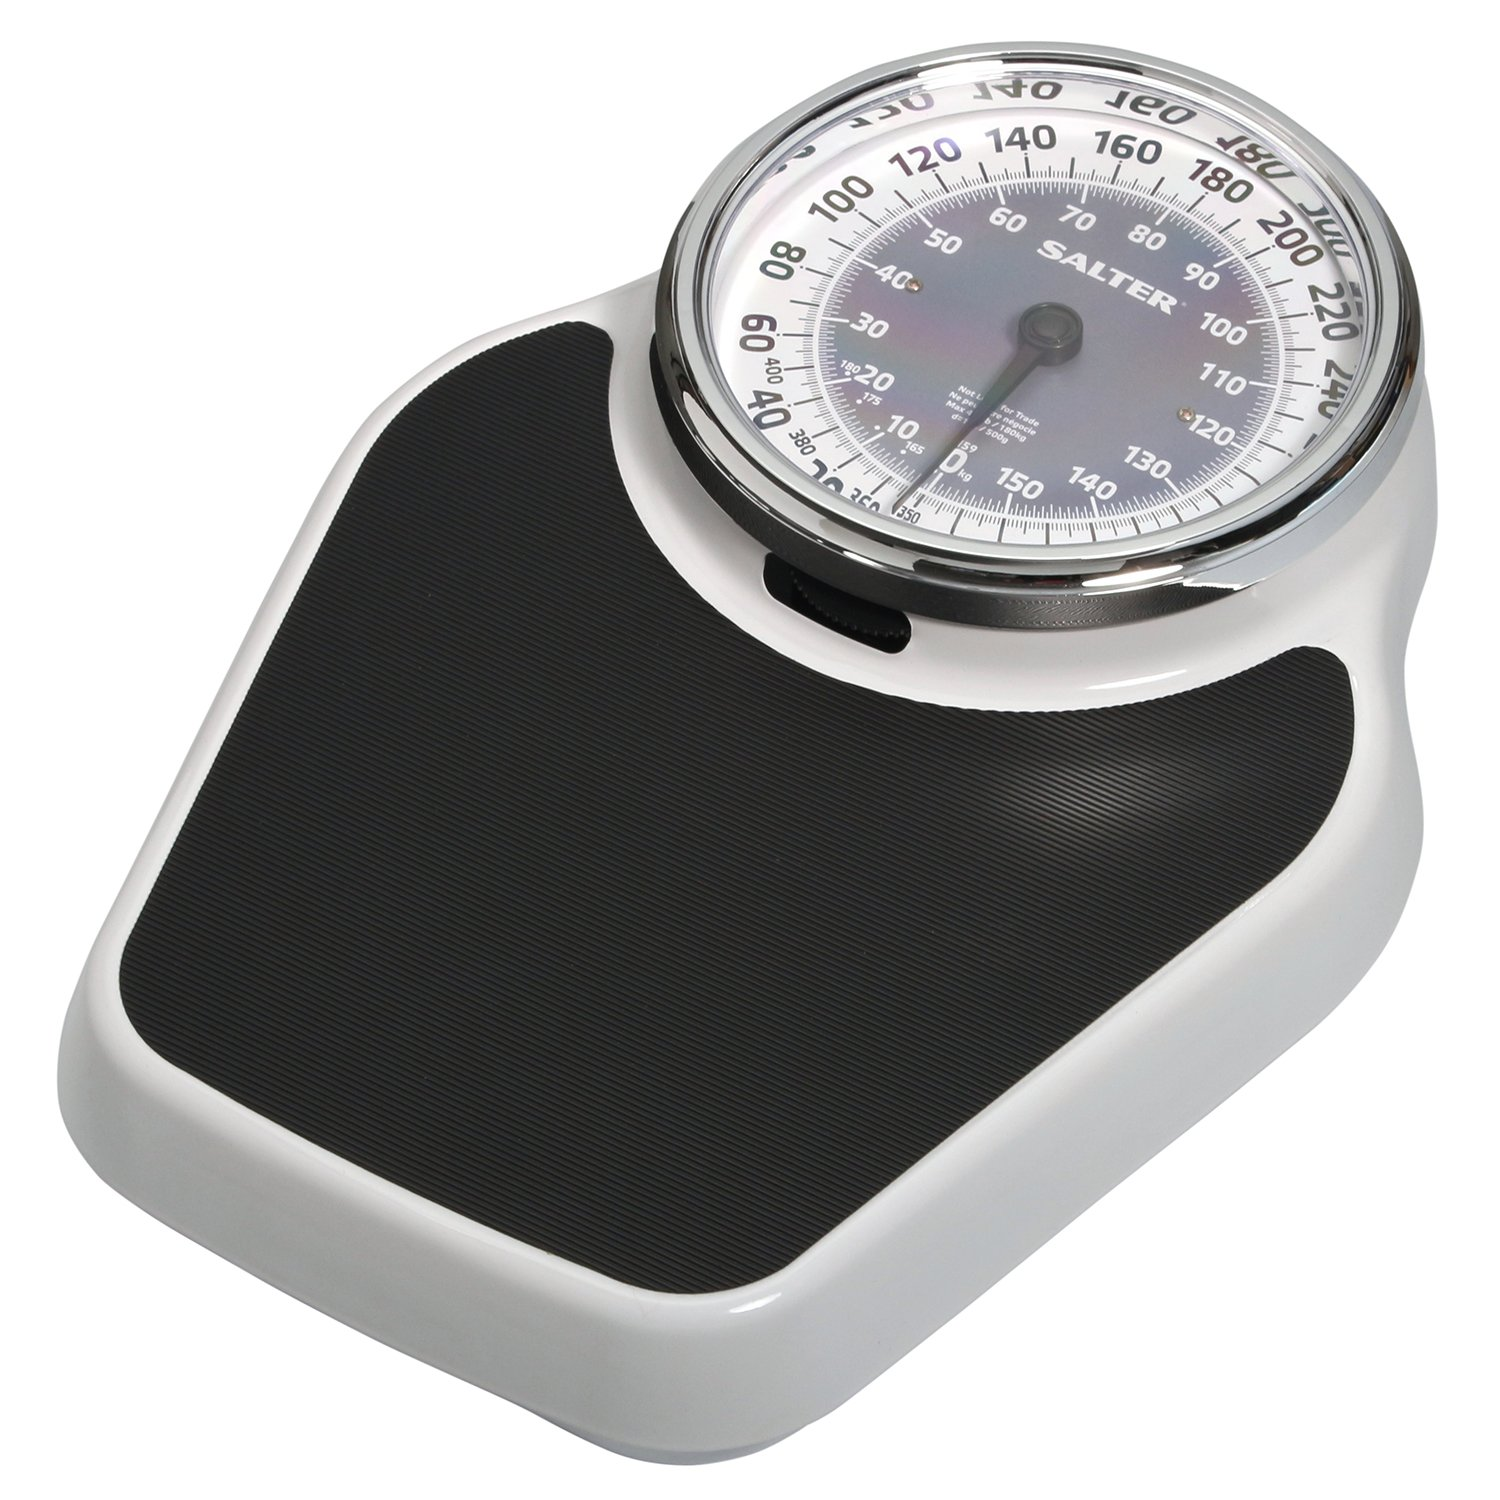 Salter Professional Analog Mechanical Dial Bathroom Scale, 400 Lb. Capacity by Salter